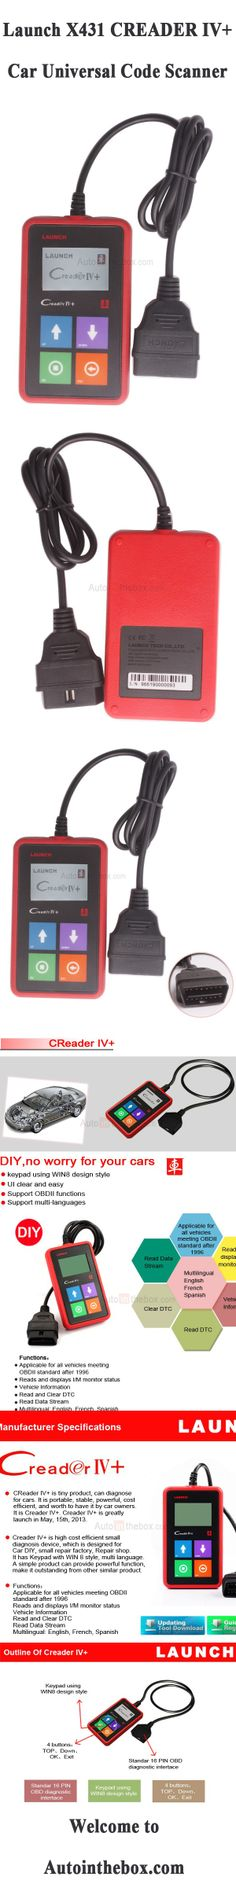 Buy Launch X431 CREADER IV+ Car Universal Code Scanner $27.99  - See more at: http://www.autointhebox.com/buy-launch-x431-creader-iv-car-universal-code-scanner_p1448.html #OBD2